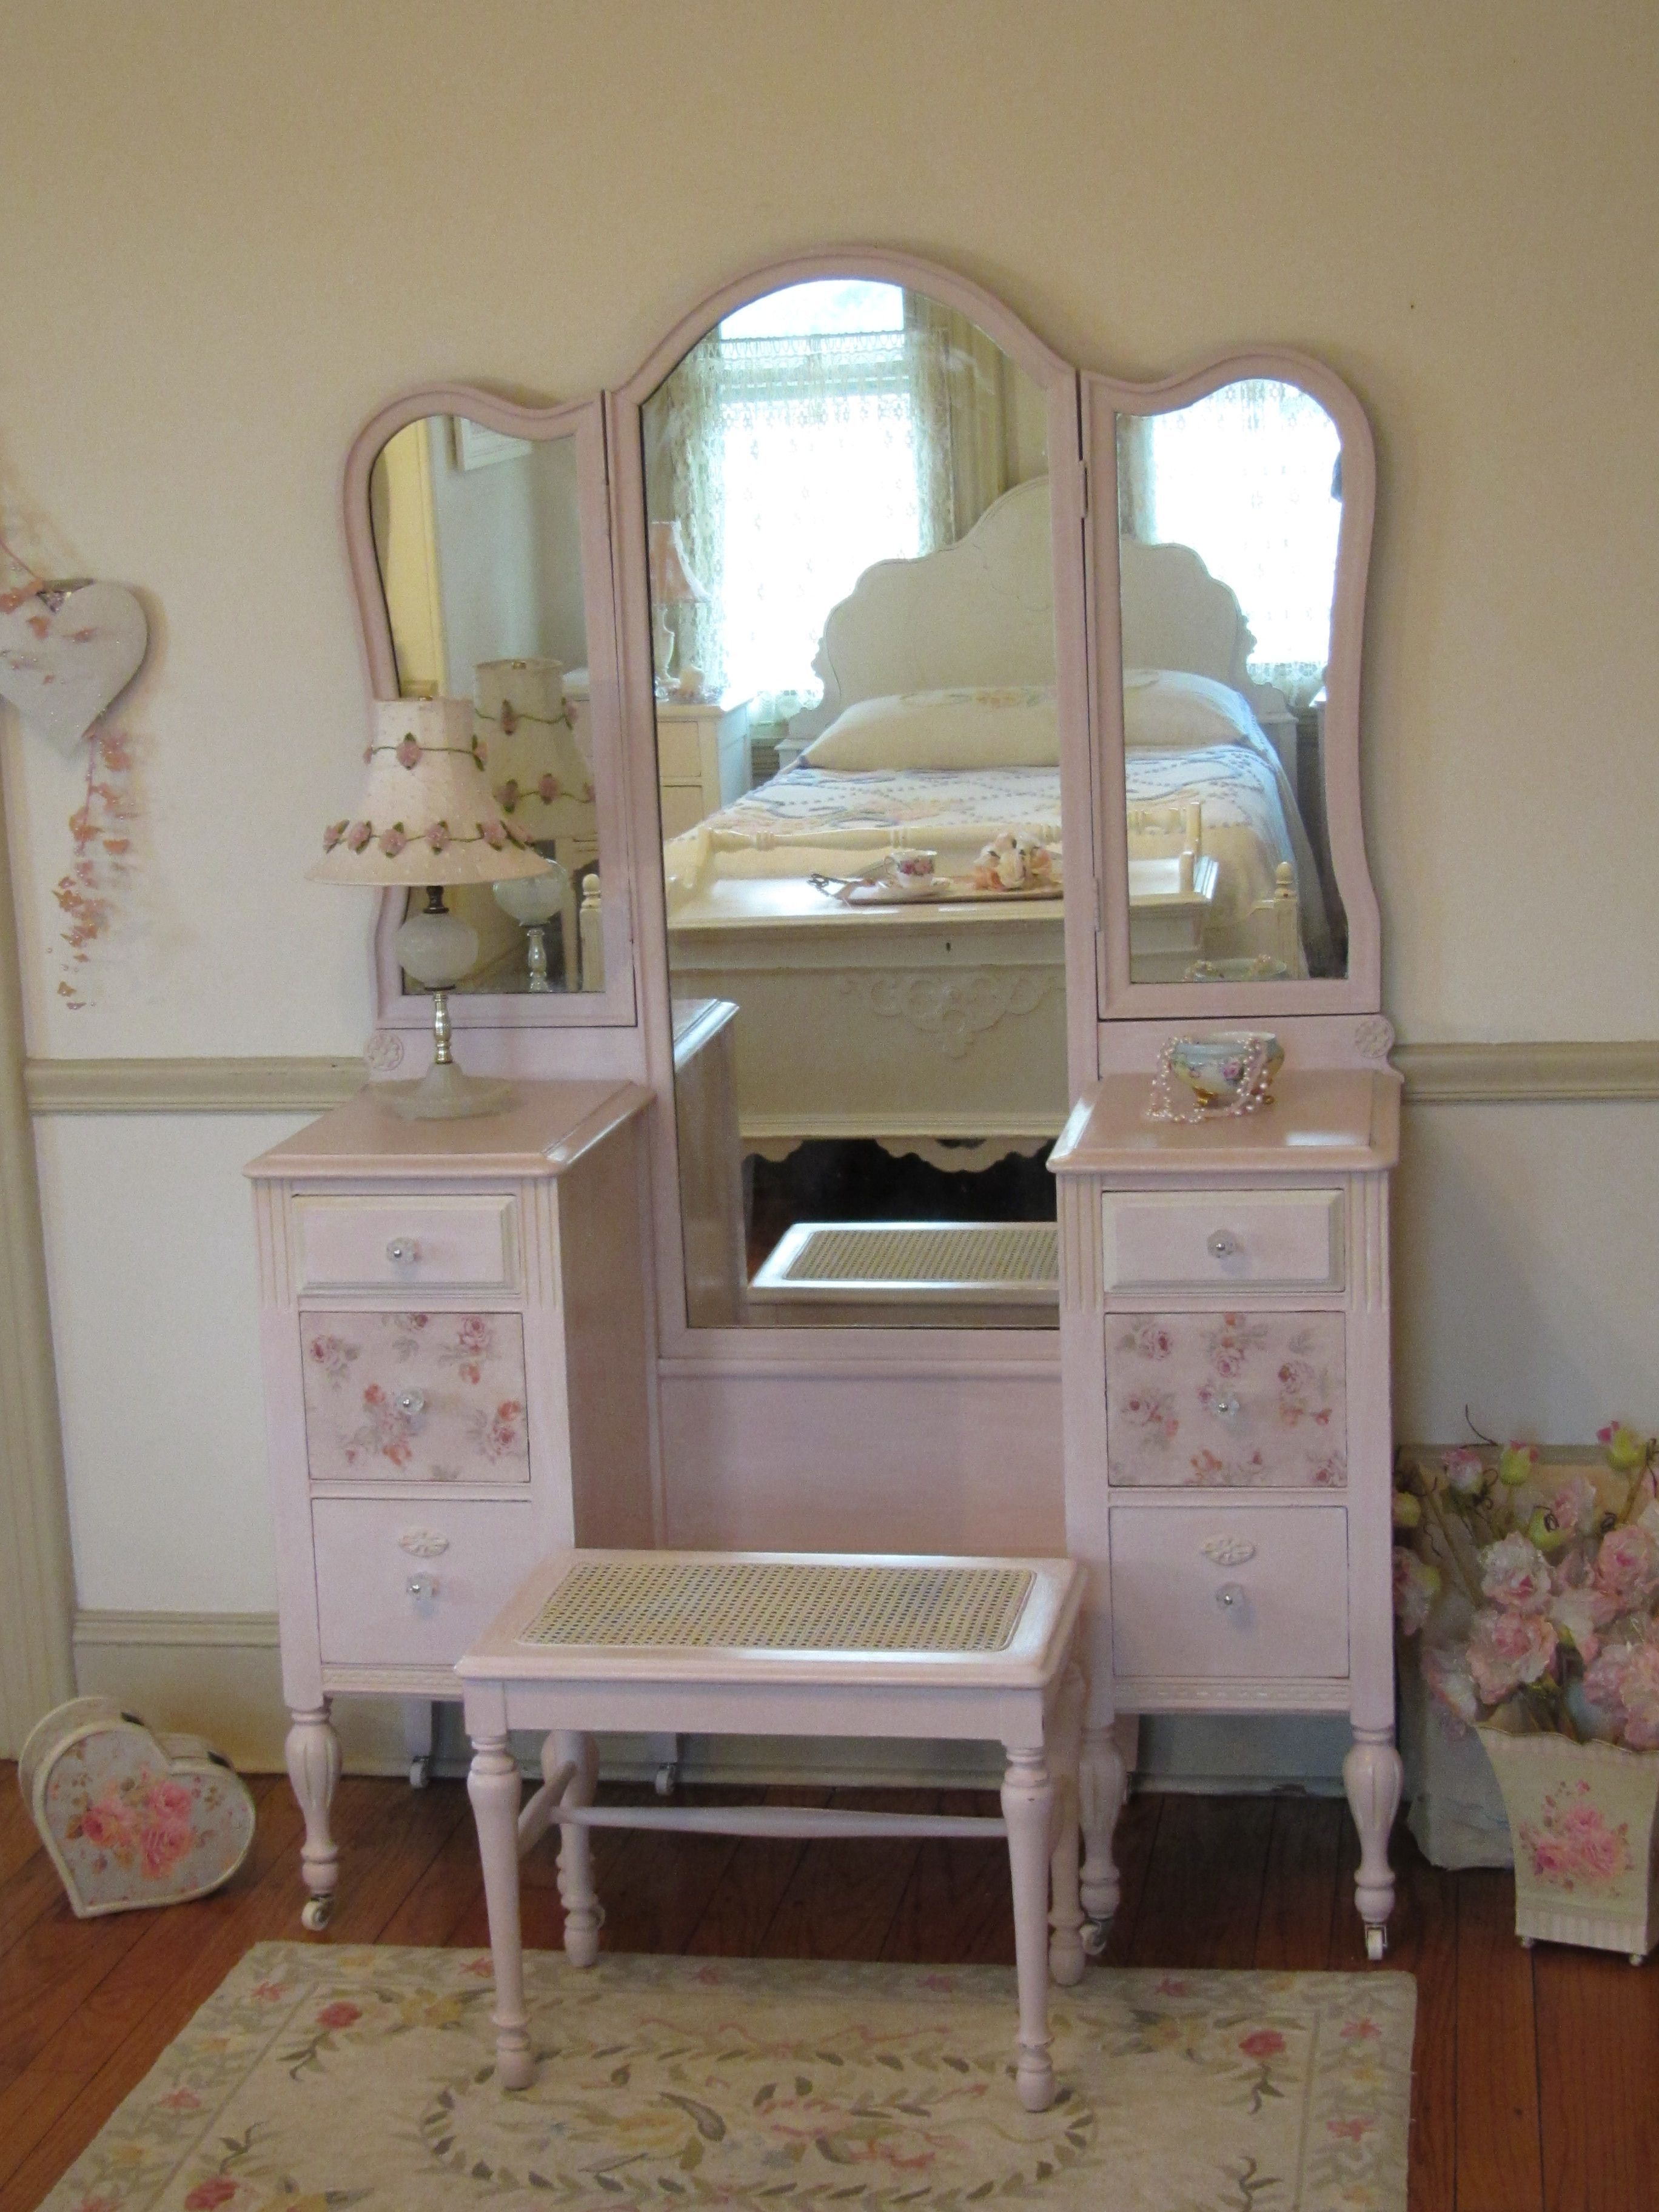 Beautiful Pink Antique Vanity With Tri Fold Mirror And Cane Bench Forever Pink Cottage Chic Shabby Chic Wall Decor Shabby Chic Interiors Shabby Chic Frames